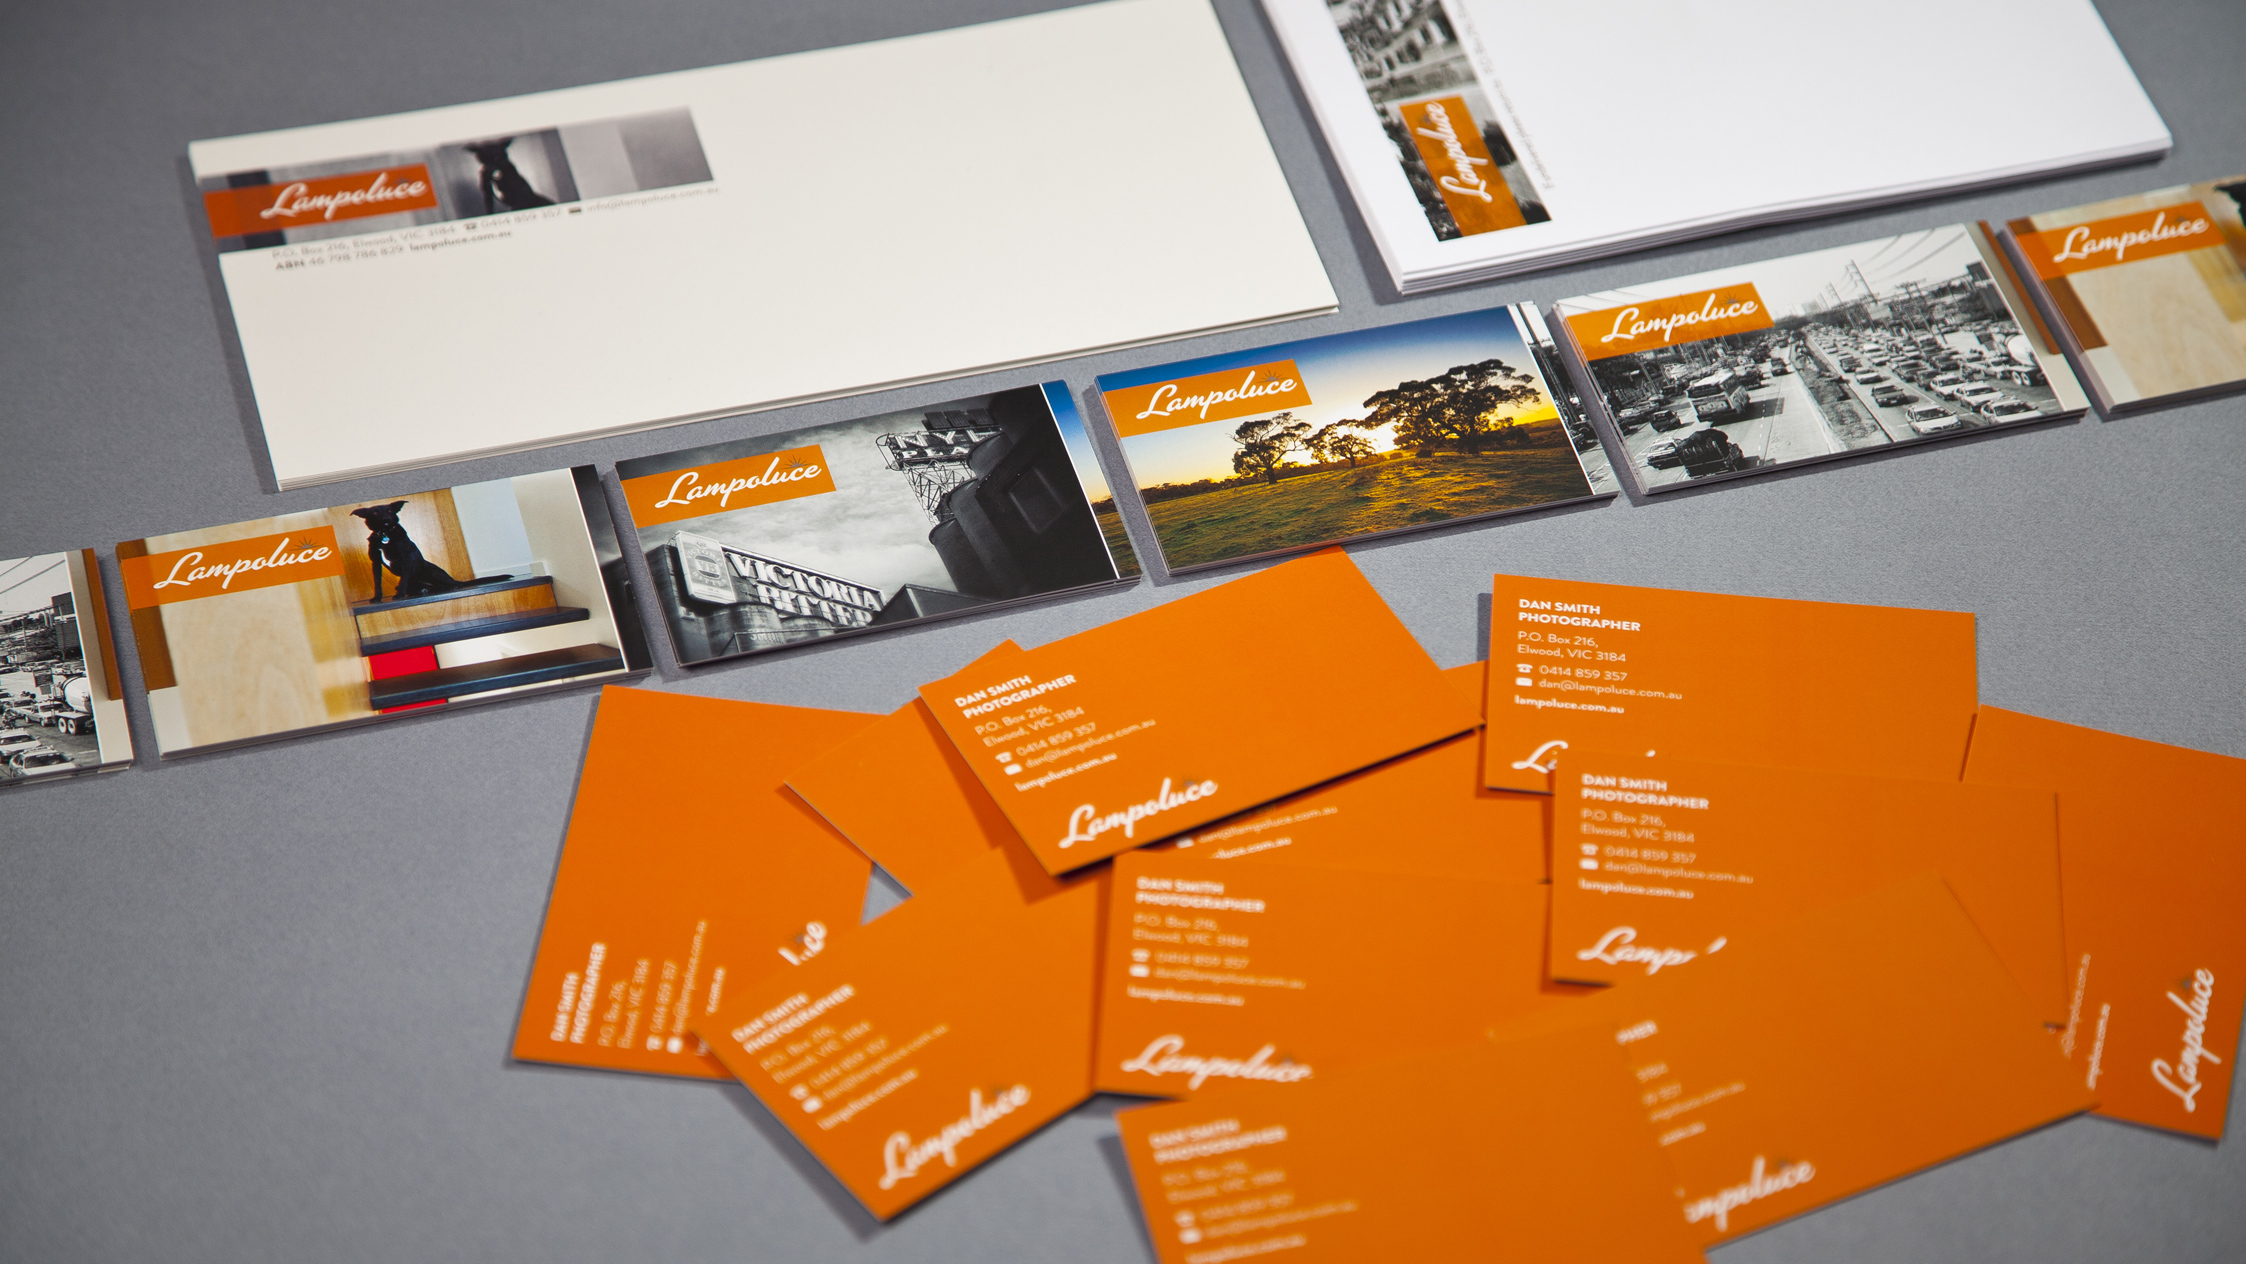 Lampoluce Stationery Suite